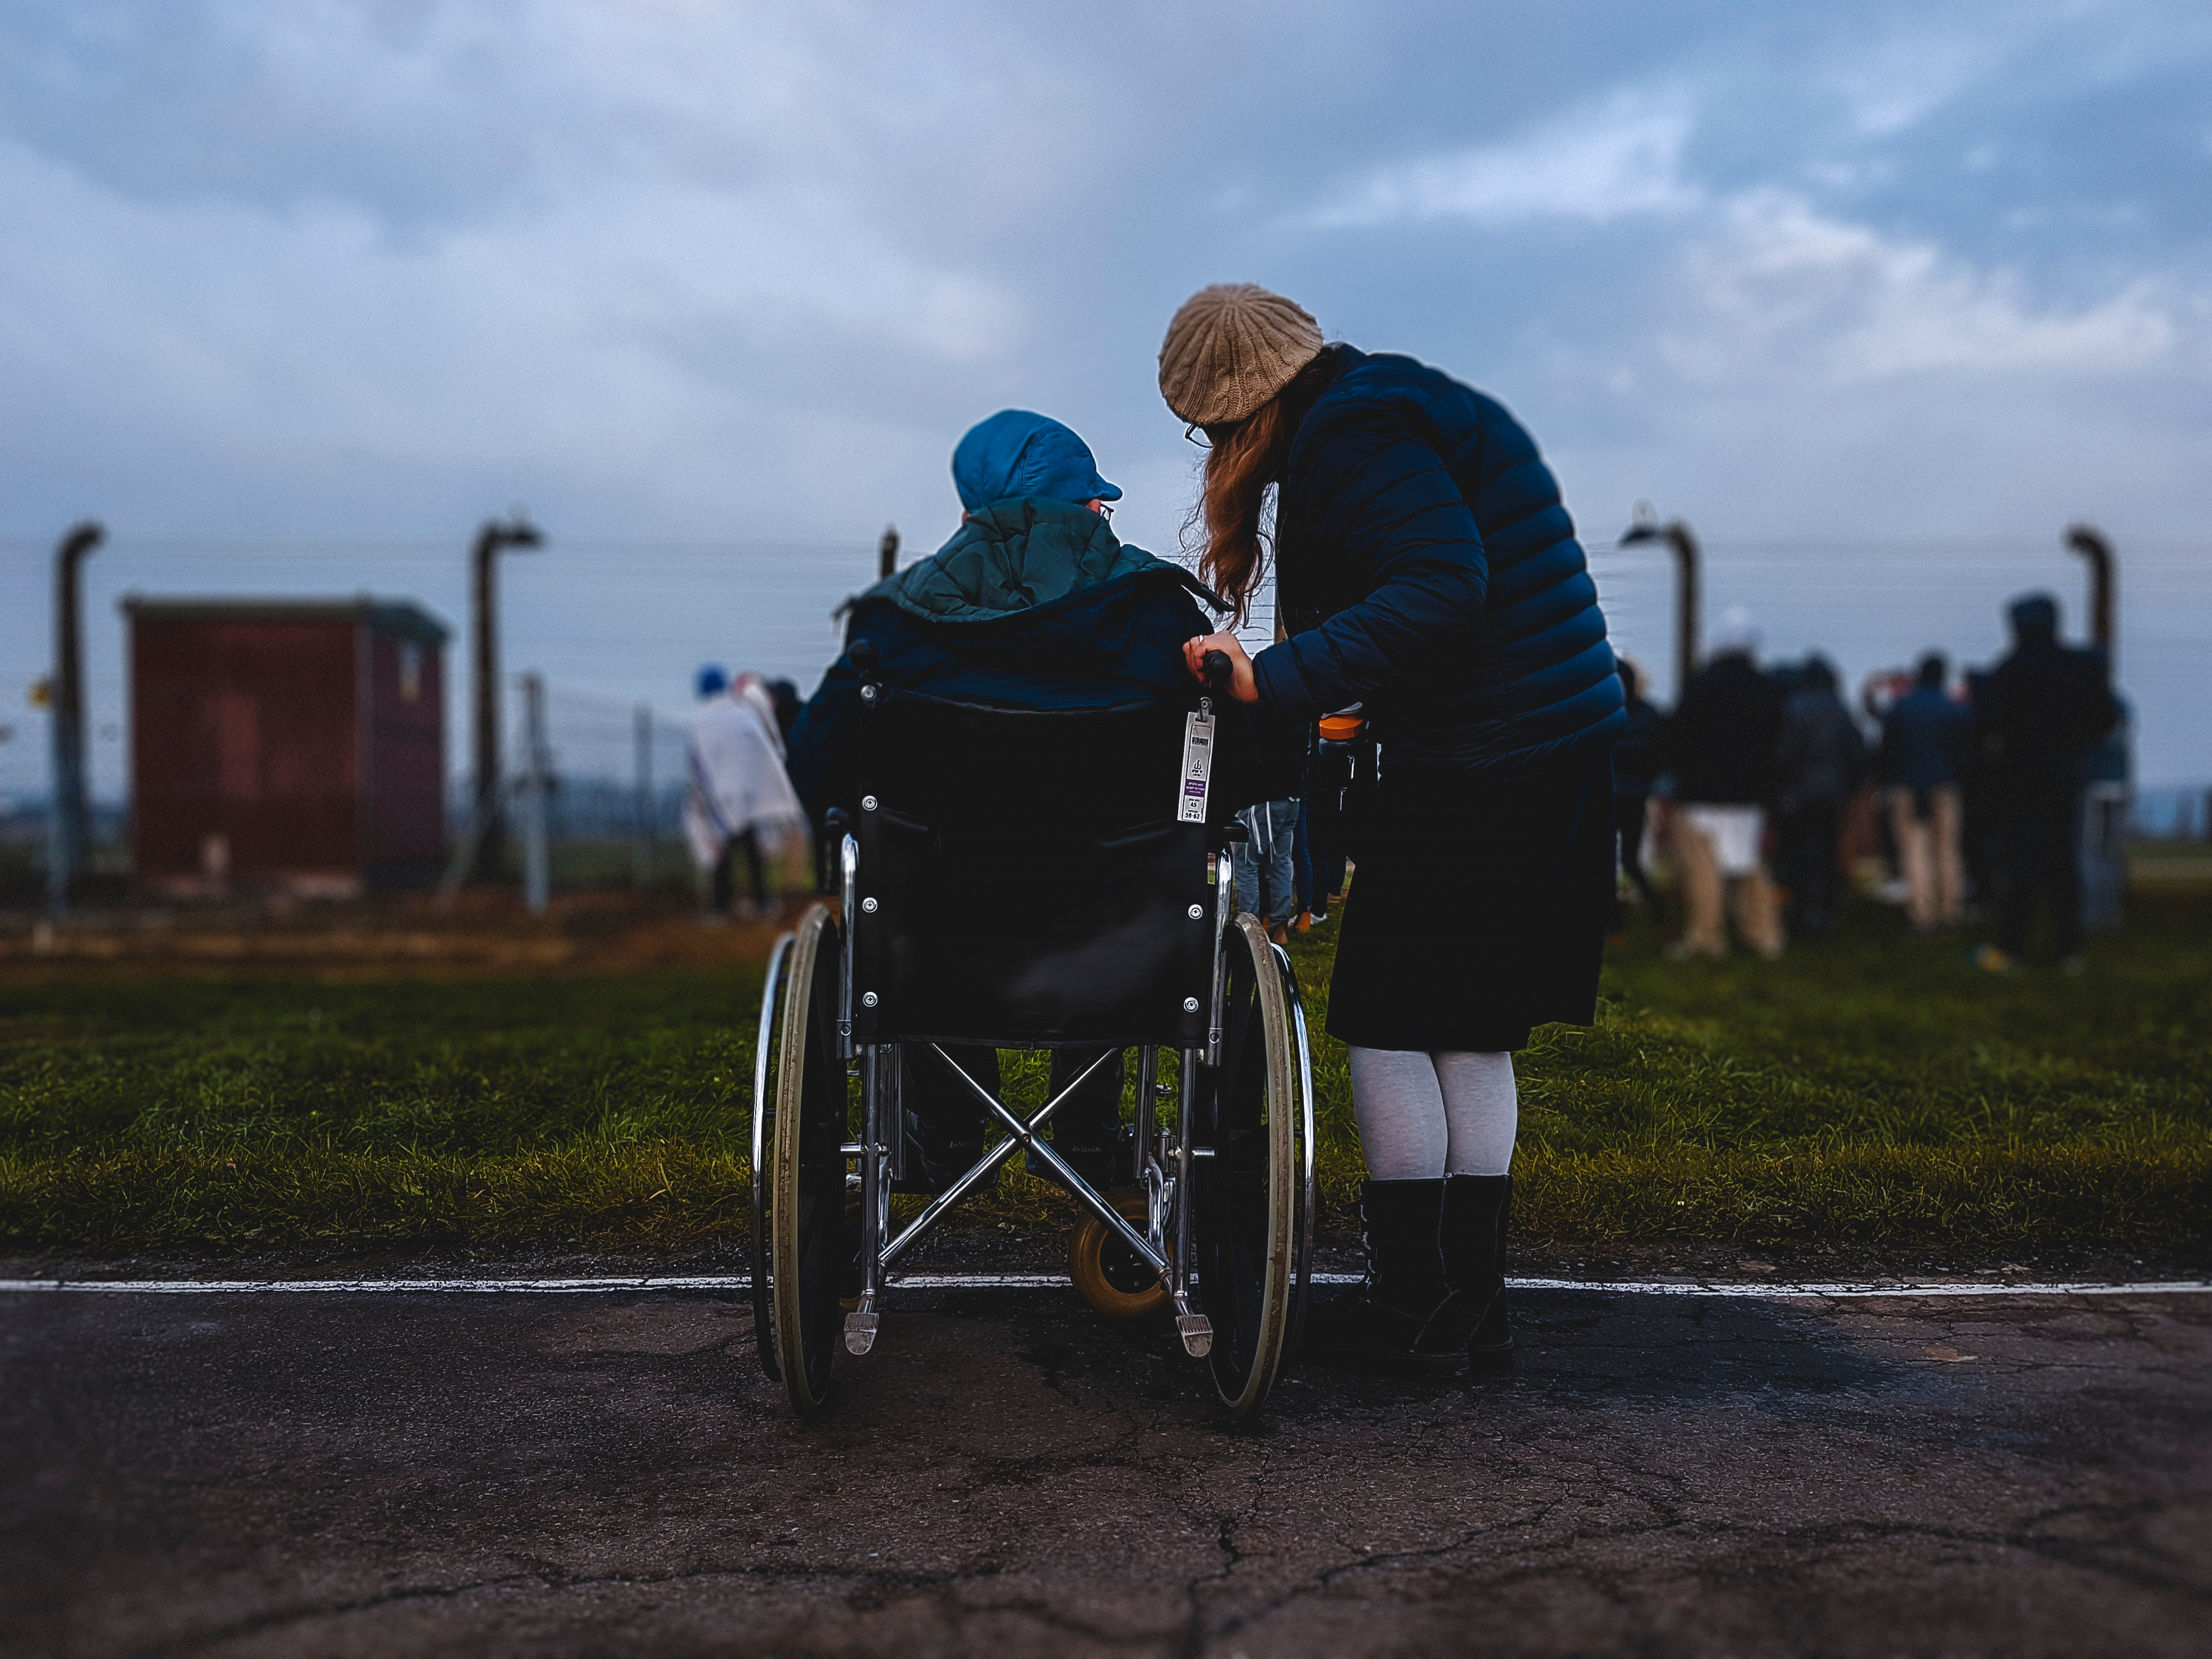 Person in a wheelchair sits looking out at field, beside them is a woman speaking to them.